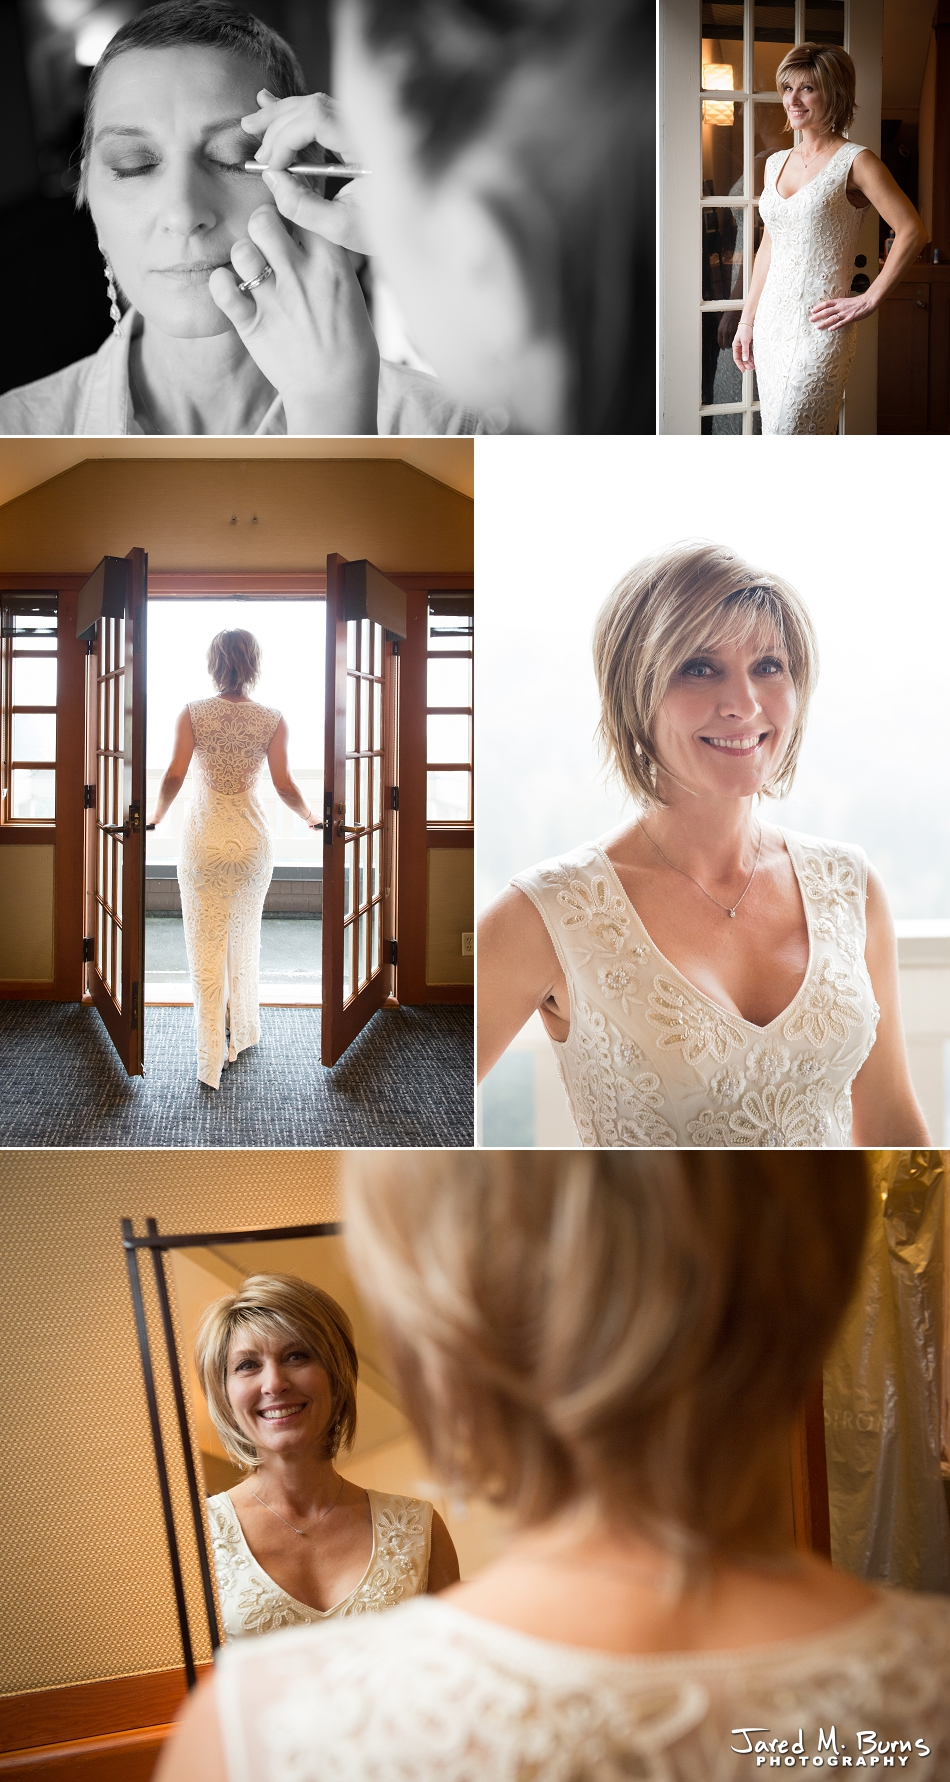 Salish Lodge at Snoqualmie Falls Winter Wedding - Jared M. Burns Photography (2)